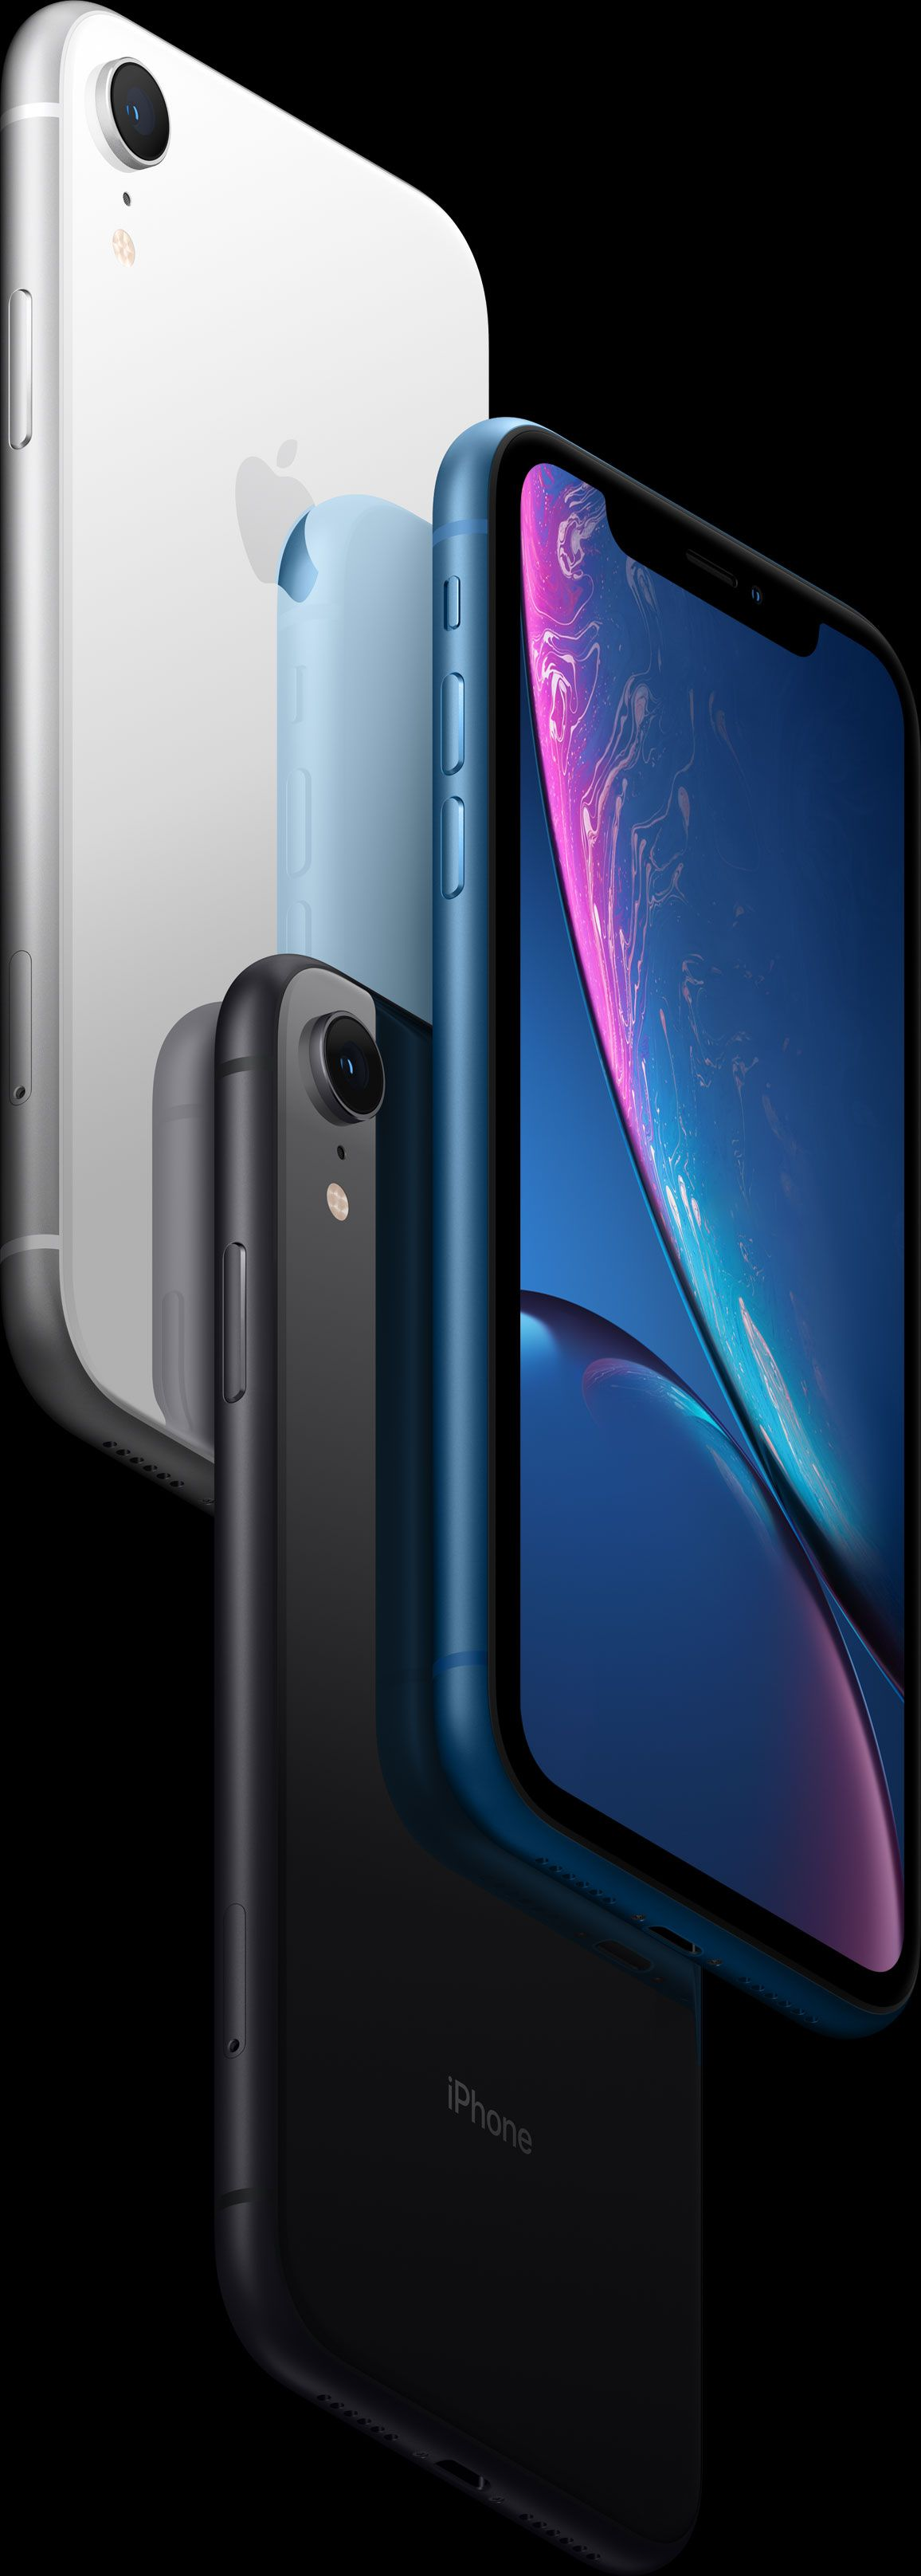 Claro iPhone XR Apple (With images) Smartphones